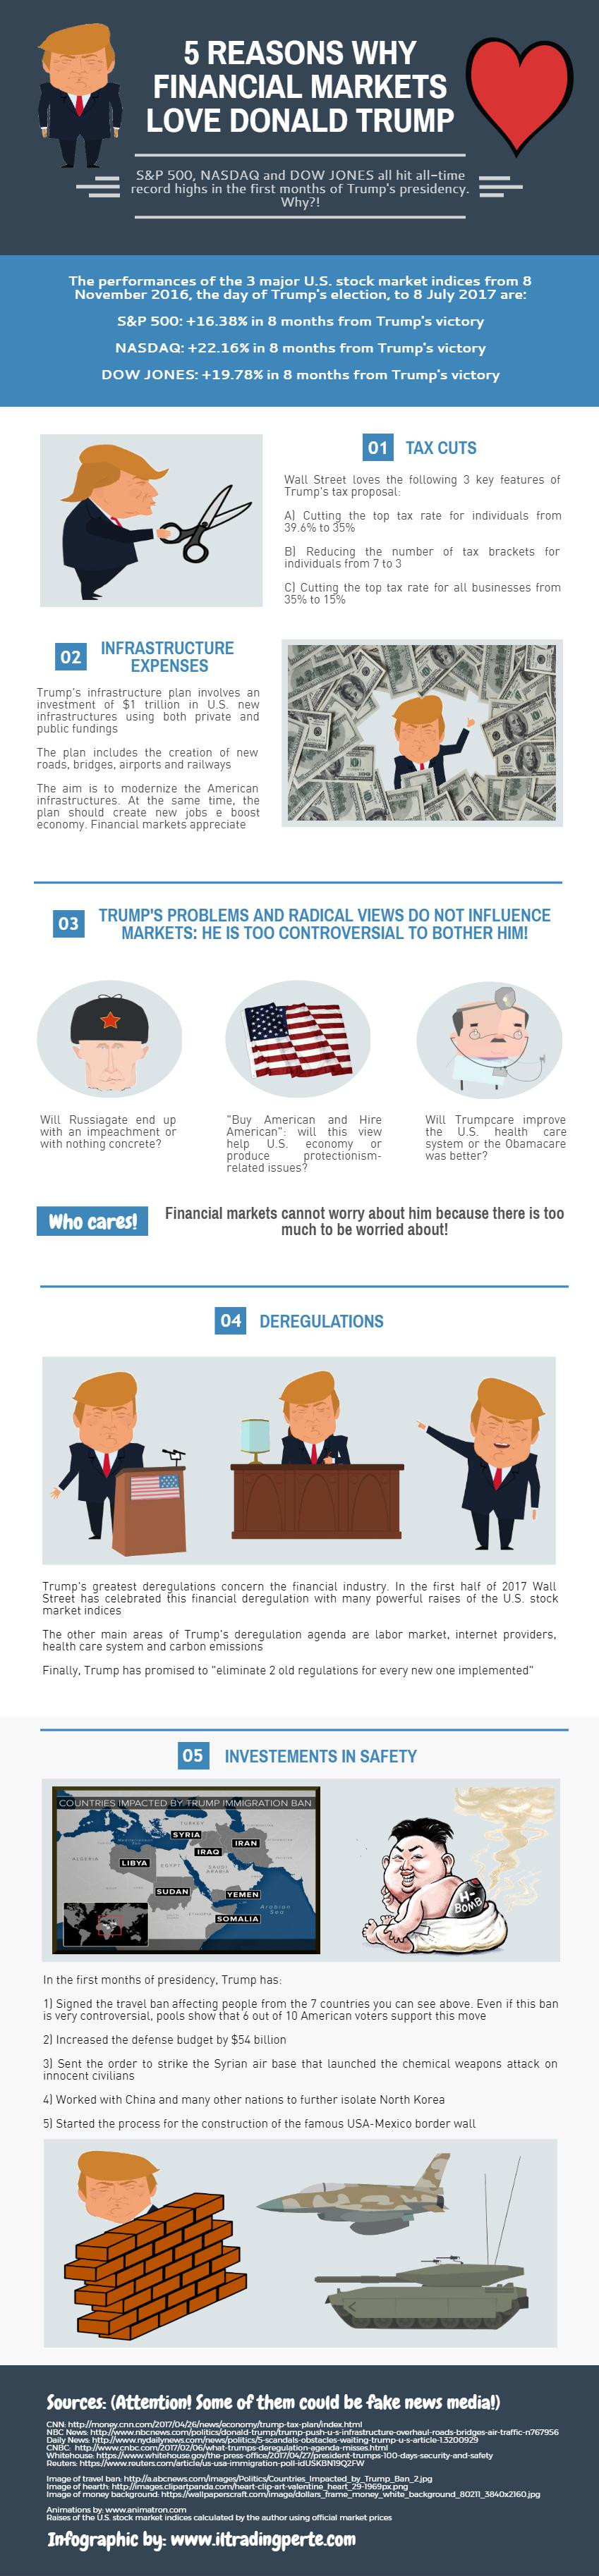 Five Reasons Why Financial Markets Love Donald Trump Infographic